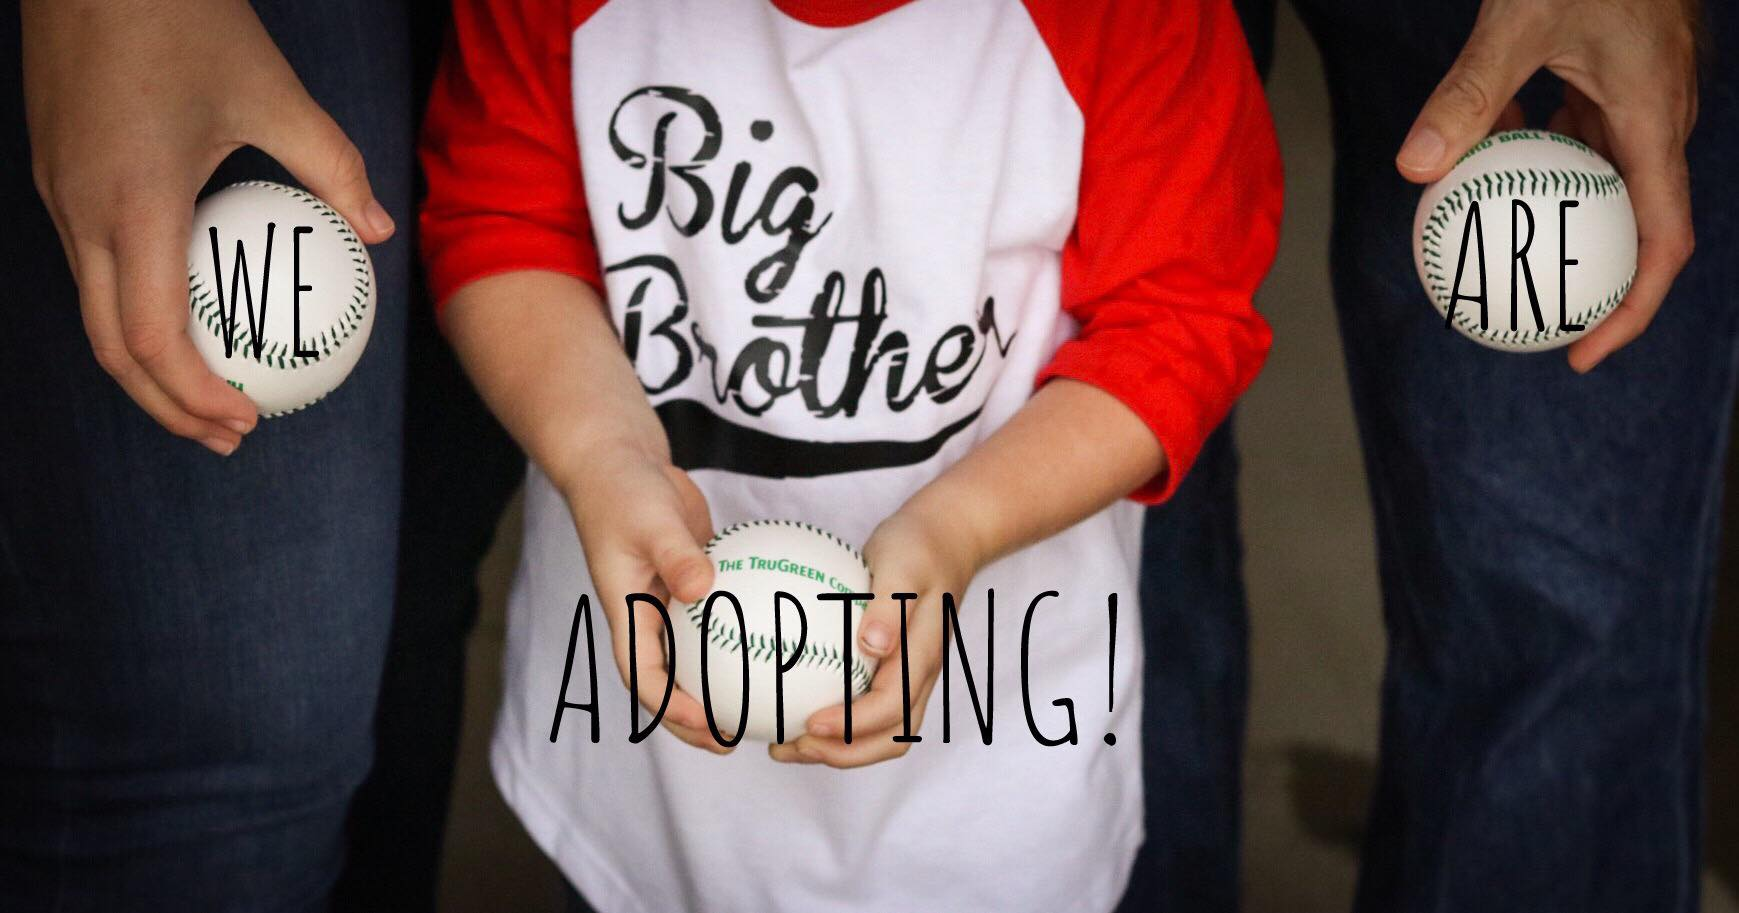 Hutcheson Family Adoption is raising money on AdoptTogether for their adoption from China.